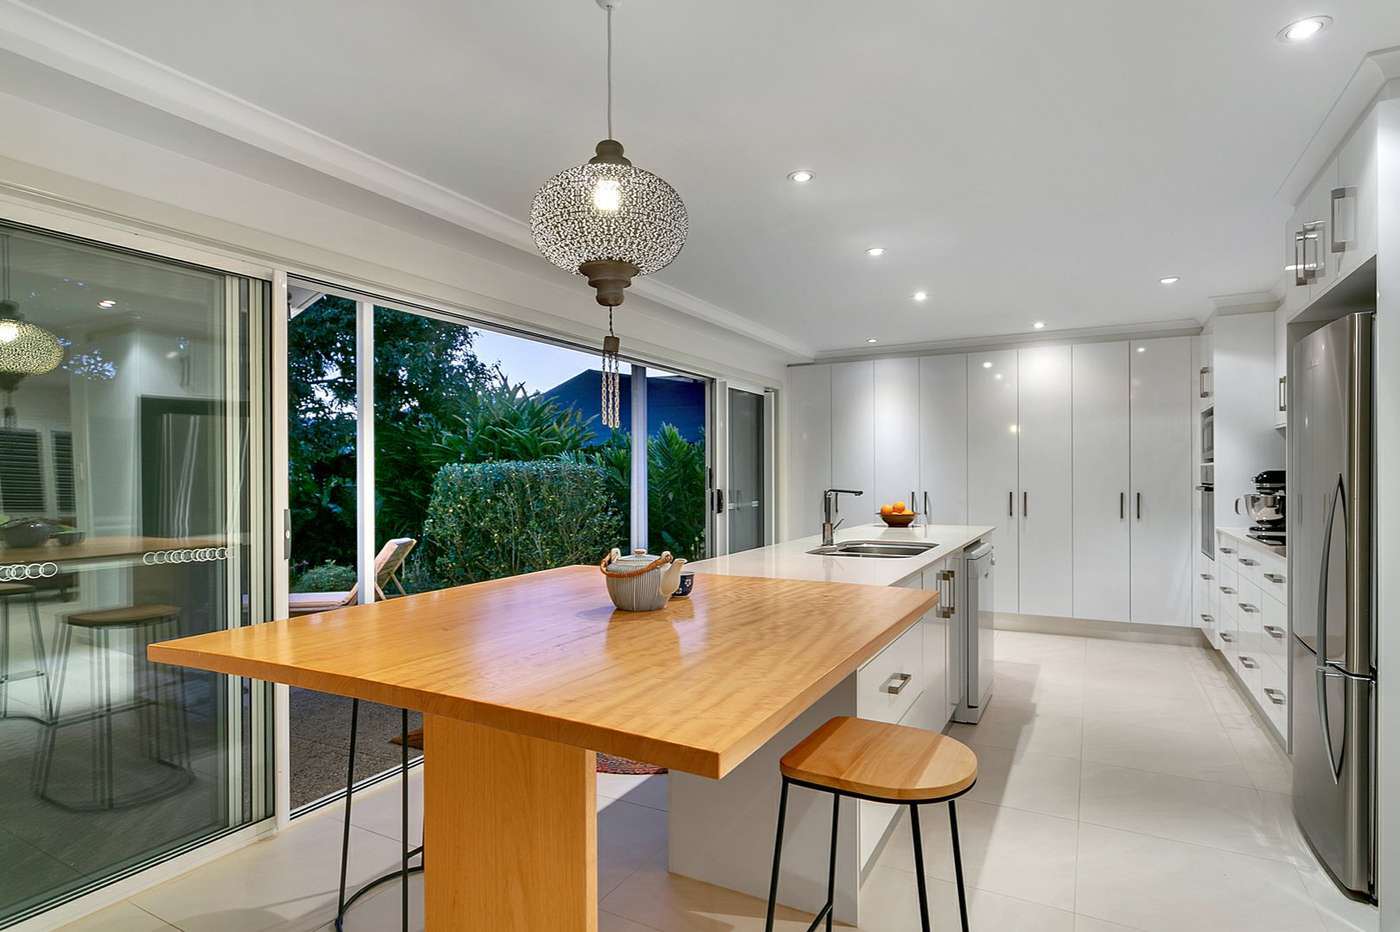 Main view of Homely house listing, 43 Hutchinson Street, Edge Hill, QLD 4870